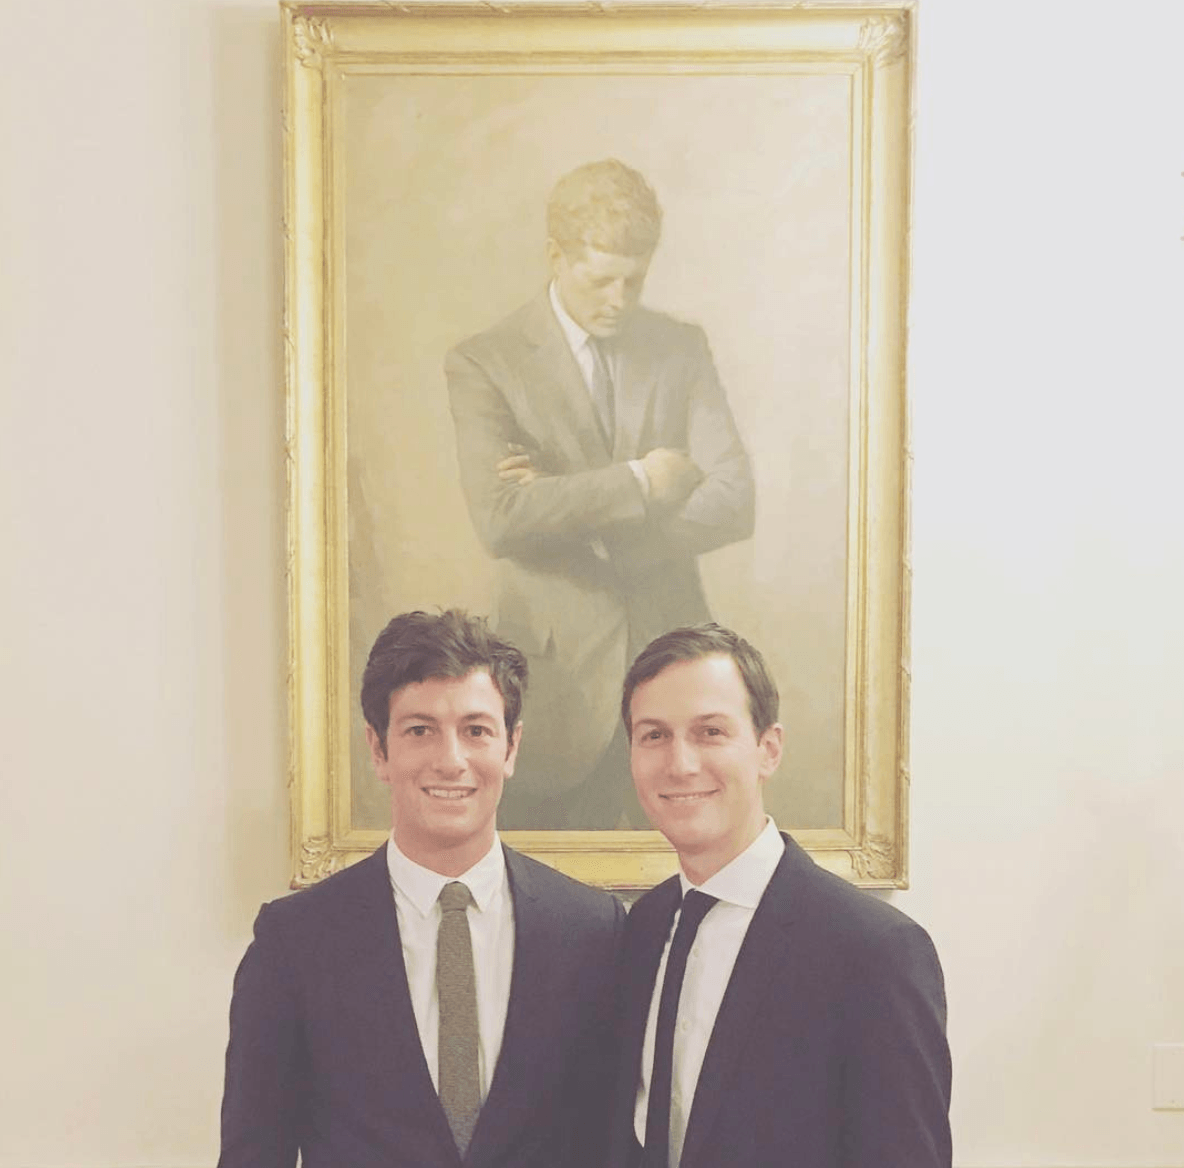 Josh and Jared Kushner in front of JFK portrait